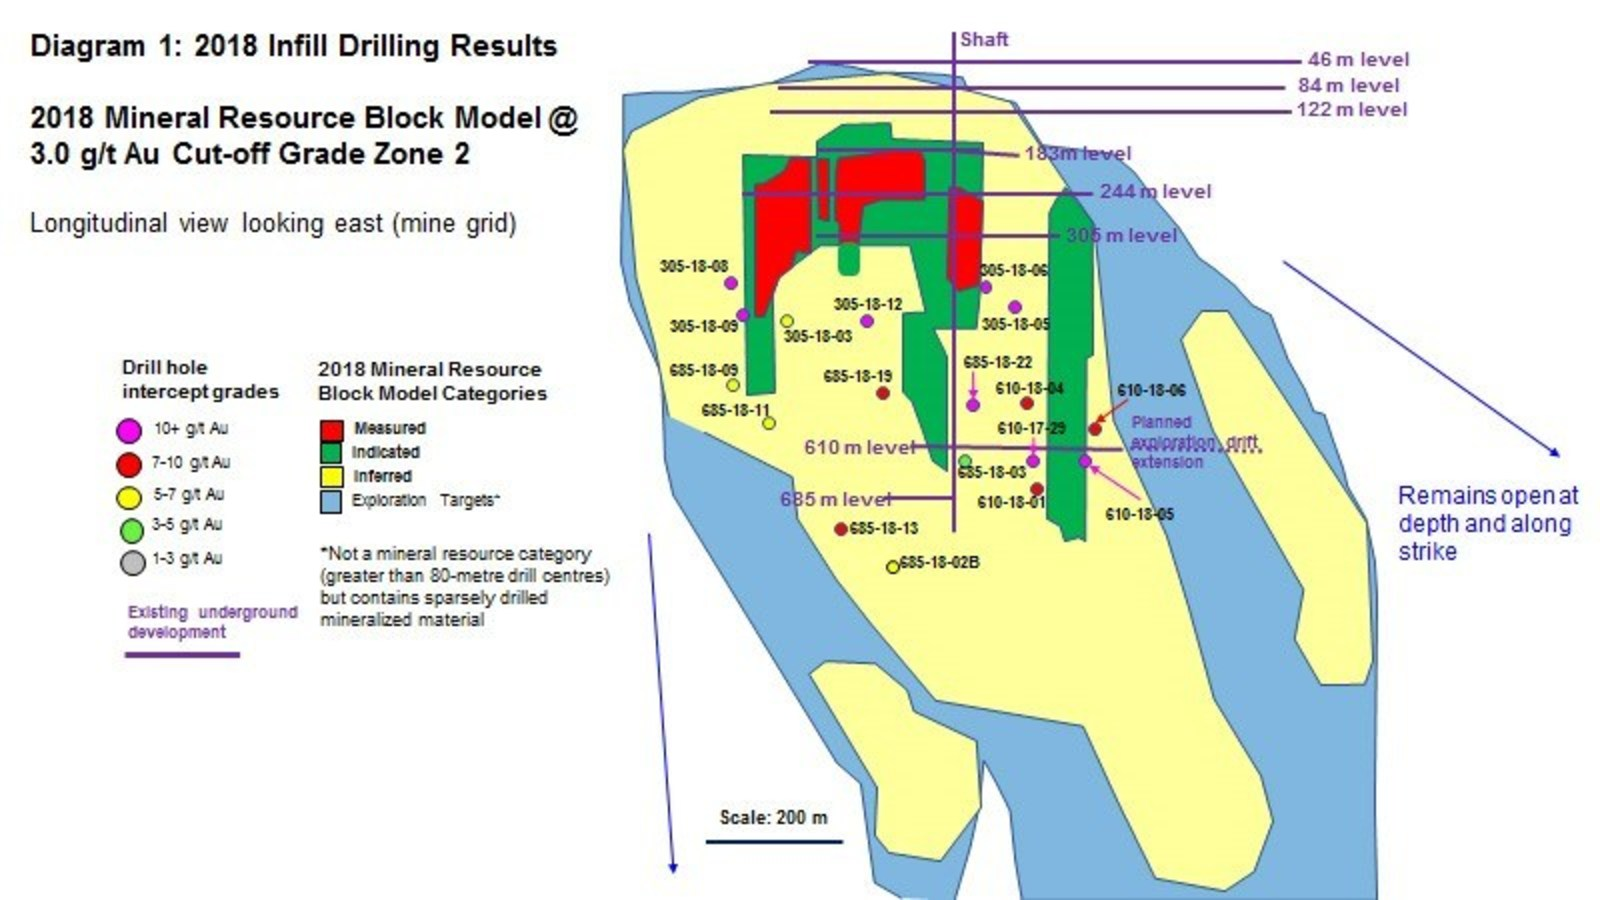 Diagram 1 : 2018 Infill Drilling Results - 2018 Mineral Resource Block Model @ 3.0 g/t Au Cut-Off Grade Zone 2